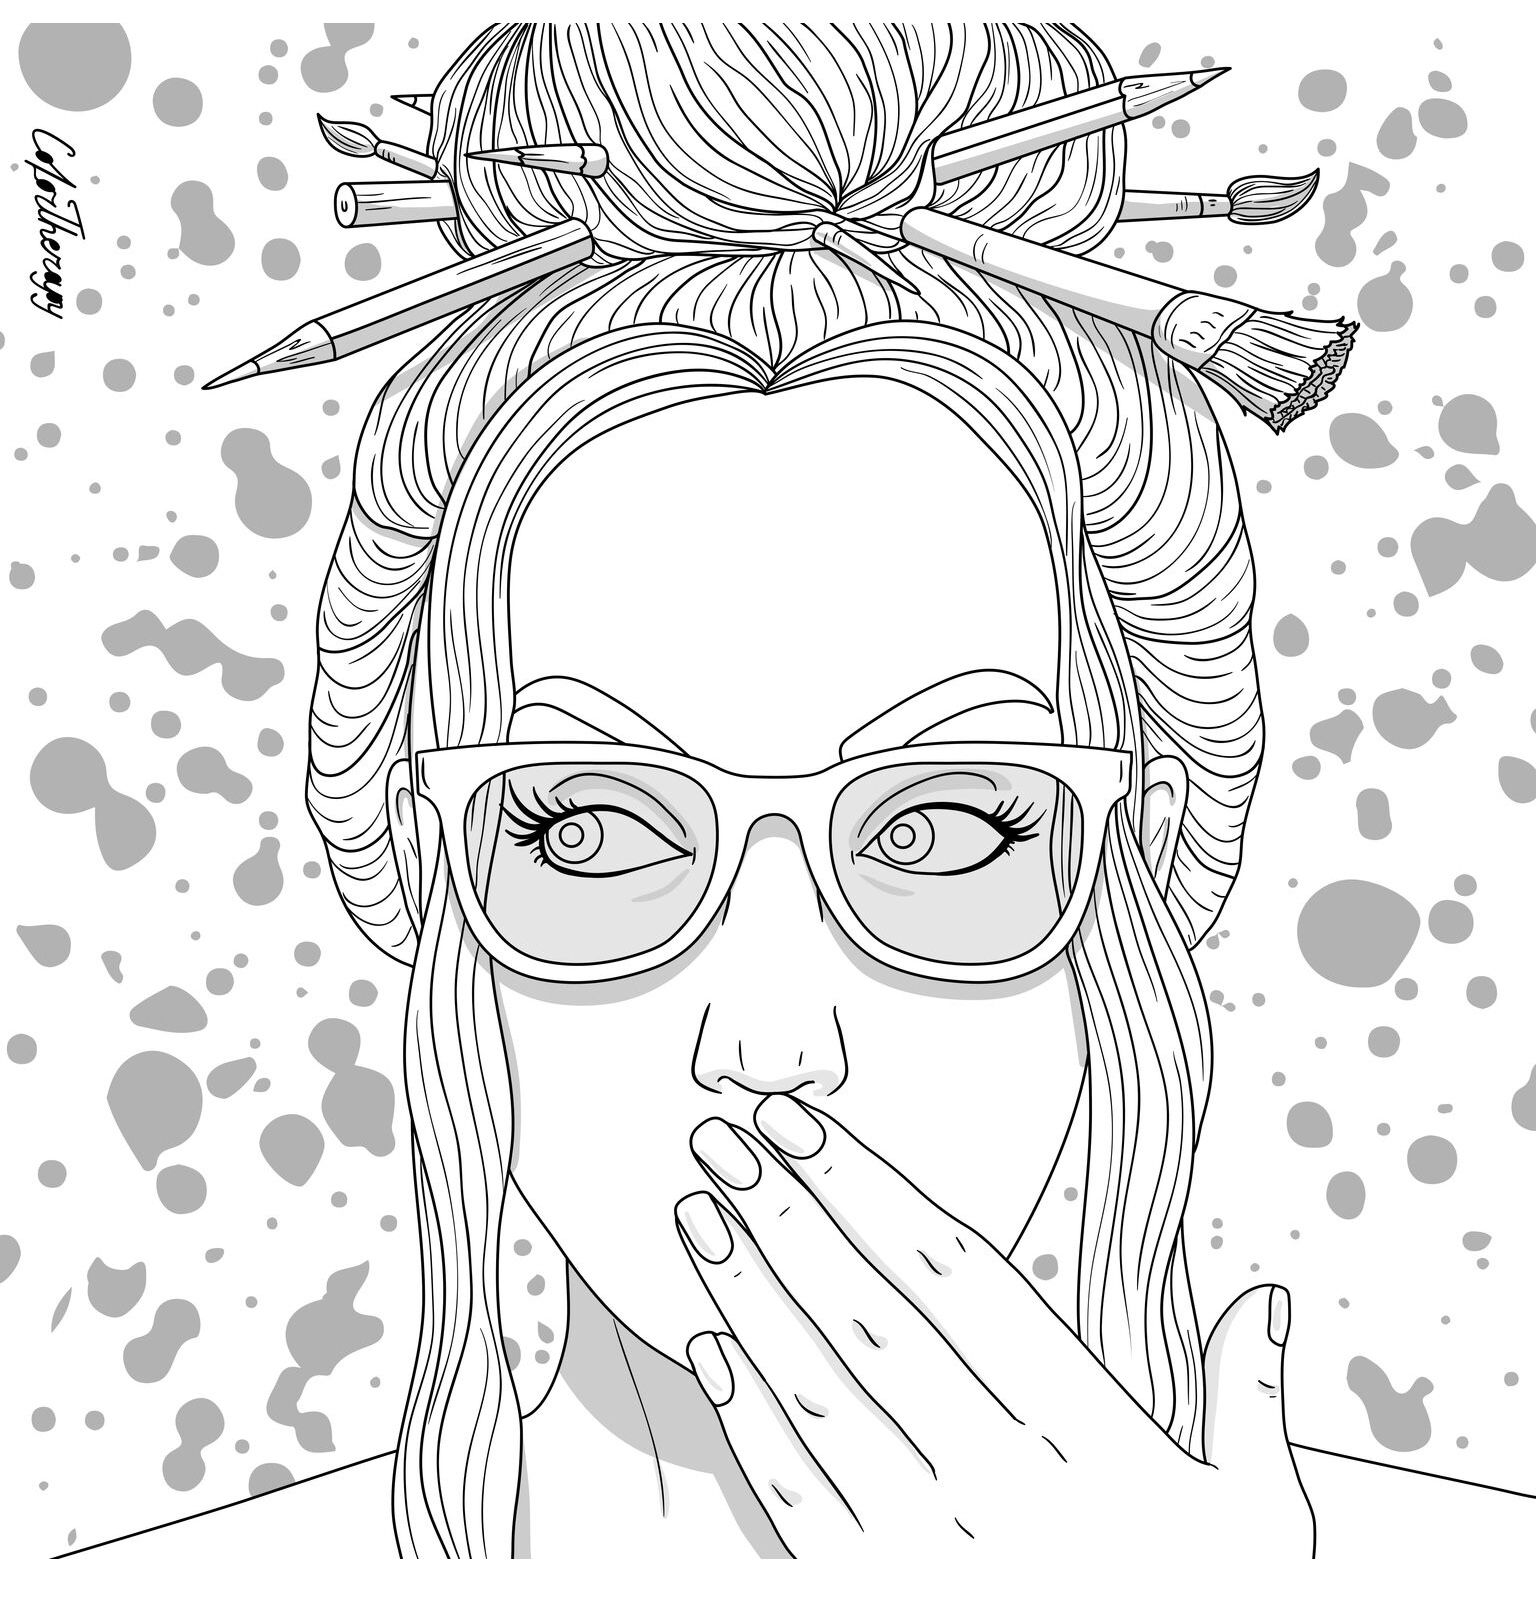 The Sneakpeek For The Next Gift Of The Day Tomorrow Do You Like This One Lady Artist Tool People Coloring Pages Coloring Pages Cartoon Coloring Pages